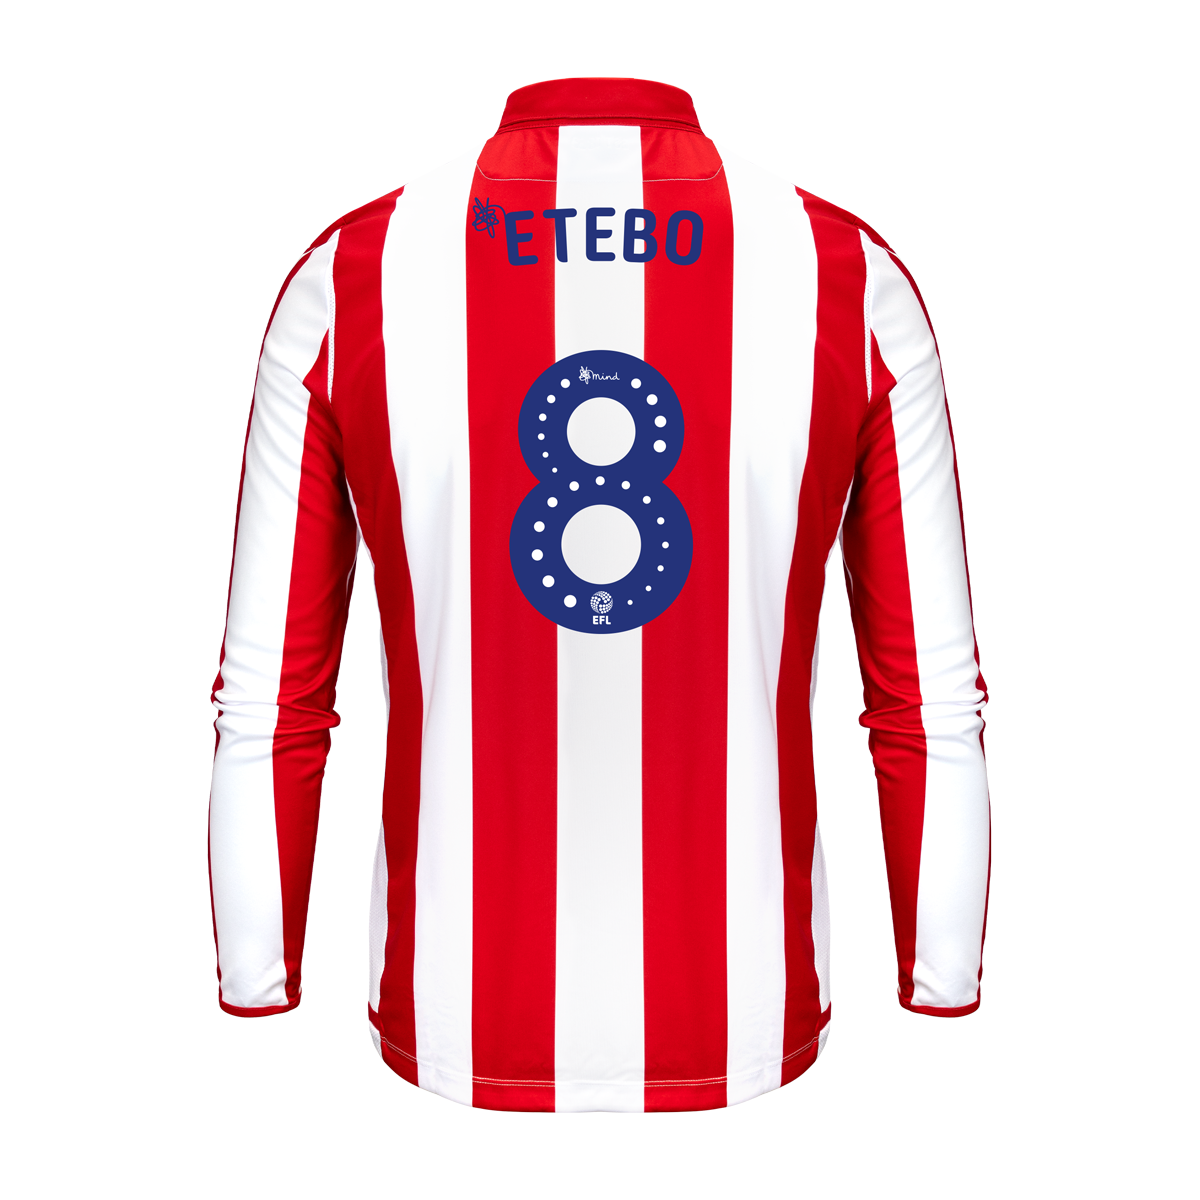 2019/20 Adult Home LS Shirt - Etebo